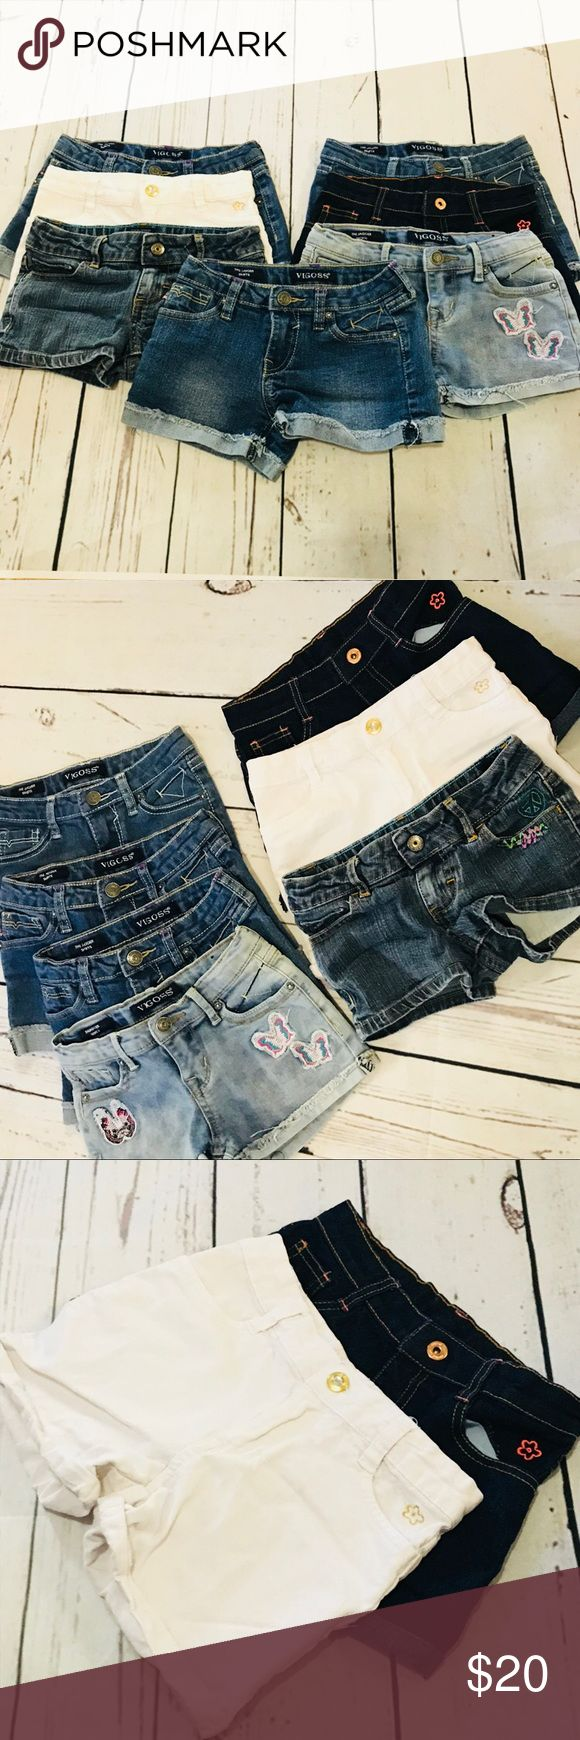 """Girls size 6 Jean Short lot of 7 Shorts Girls Jean Short lot of 7 Shorts All are a size 6 except one pair of Faded Glory that are labeled size 5 but fit like the size 6's  You get   4 pairs of Vigoss """"The Jagger Shorts"""" all size 6 with waist adjusters  55% Ramie 24% cotton 20% polyester 1% spandex  2 pairs of Limited Too Shorts Size 6X no waist adjusters inside they are the darkest blue and white pair in the photos.   98% cotton 2% spandex   1 pair of Faded Glory shorts size 5 has waist…"""